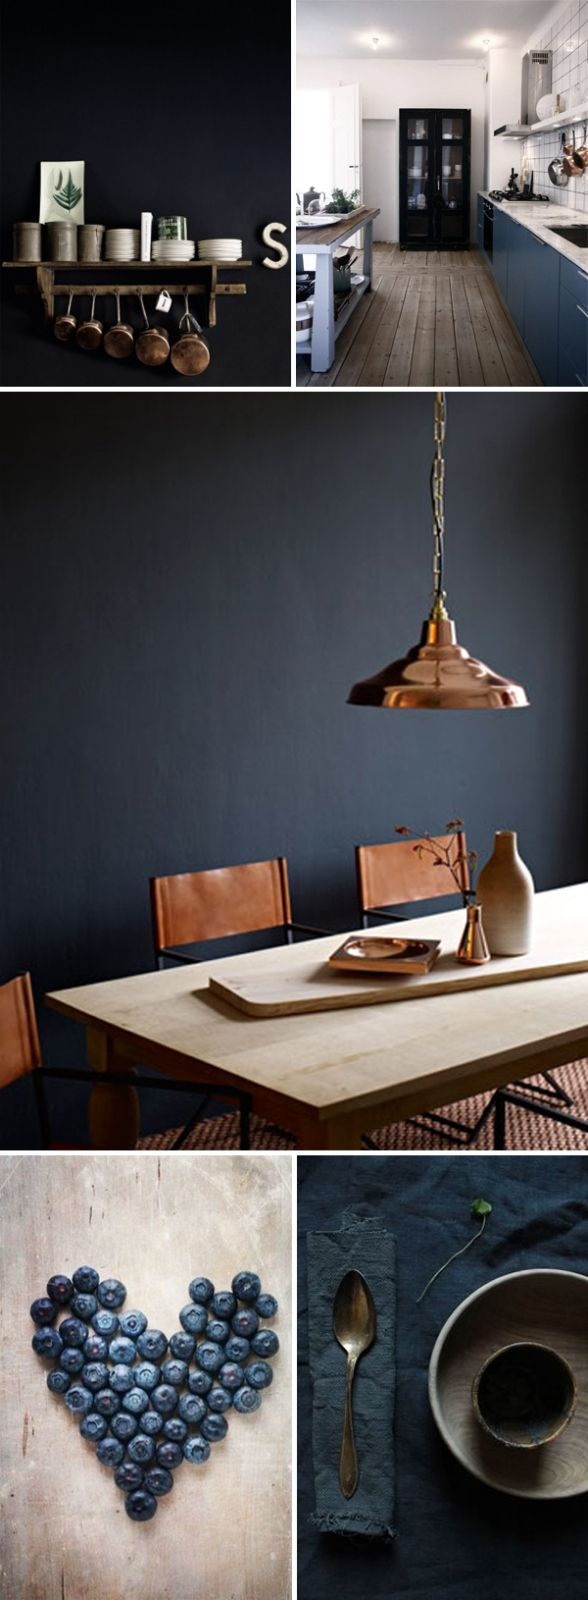 Copper light fixtures, inky hues, dark cabinetry and charcoal feature wall make for a beautifully styles moody interior.